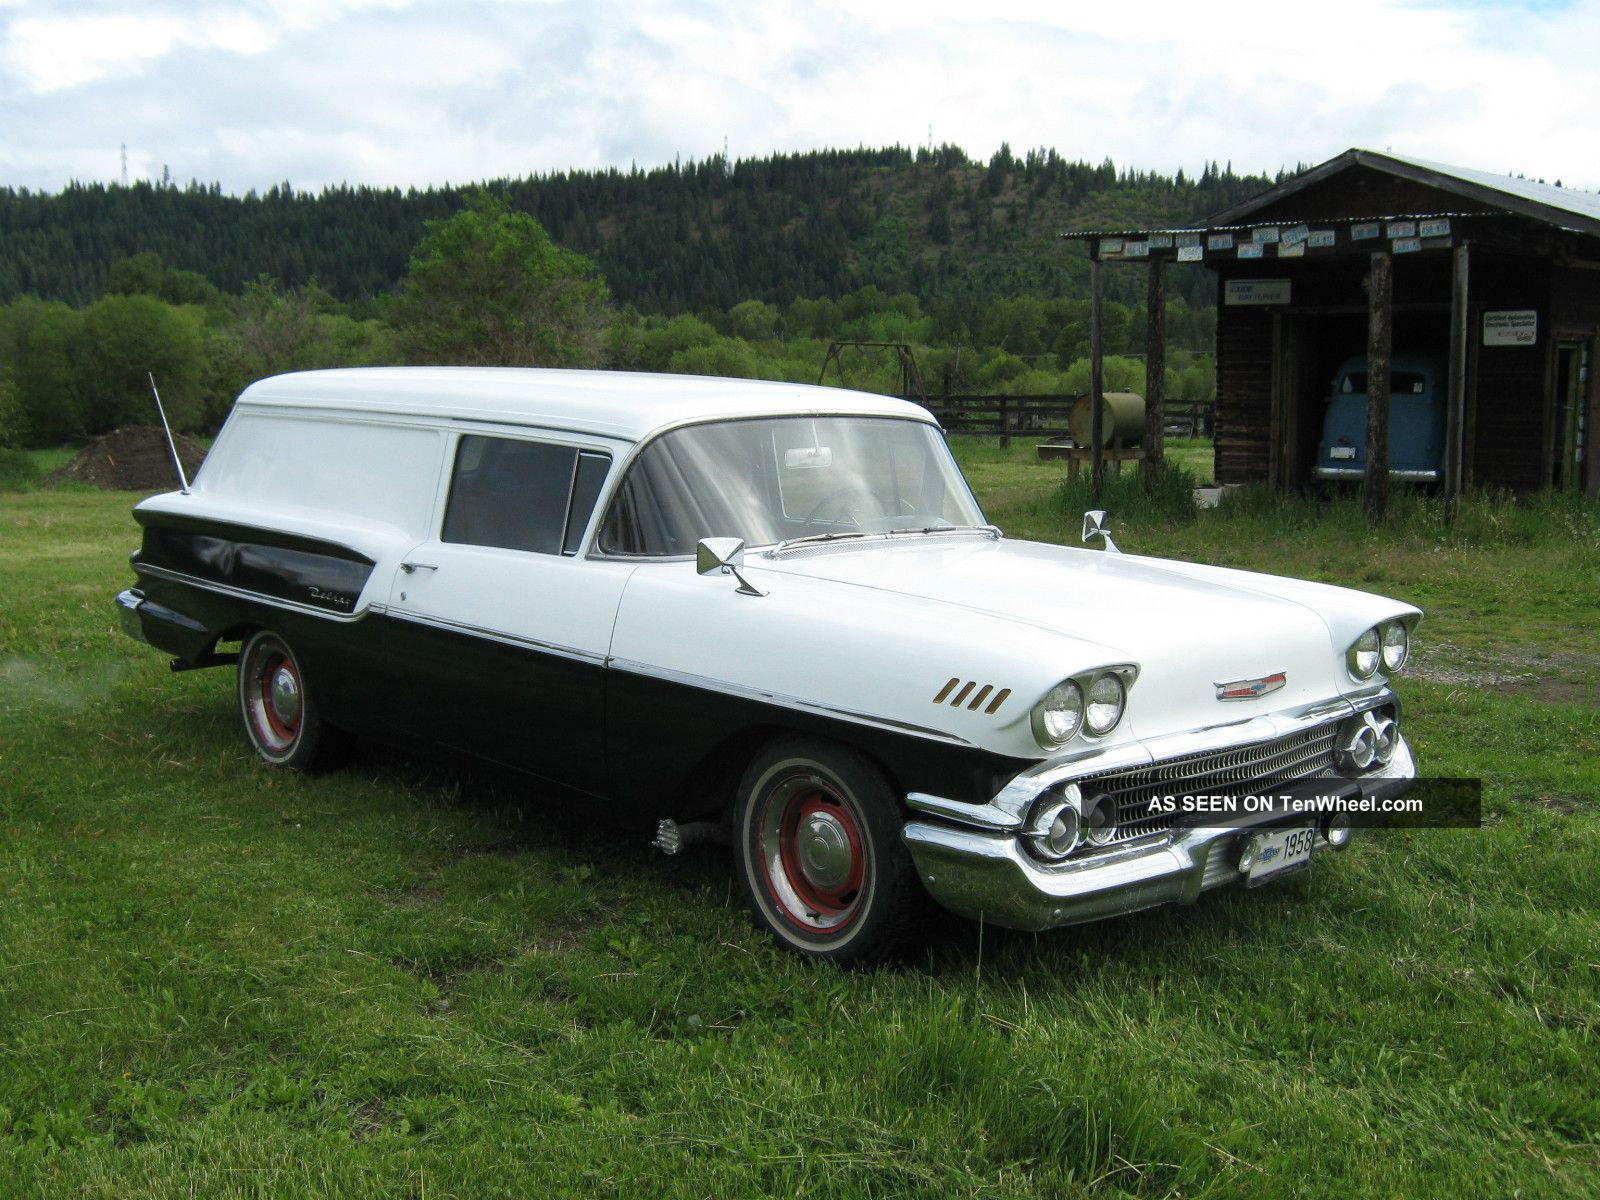 1958 Chevy Sedan Delivery Bel Air/150/210 photo